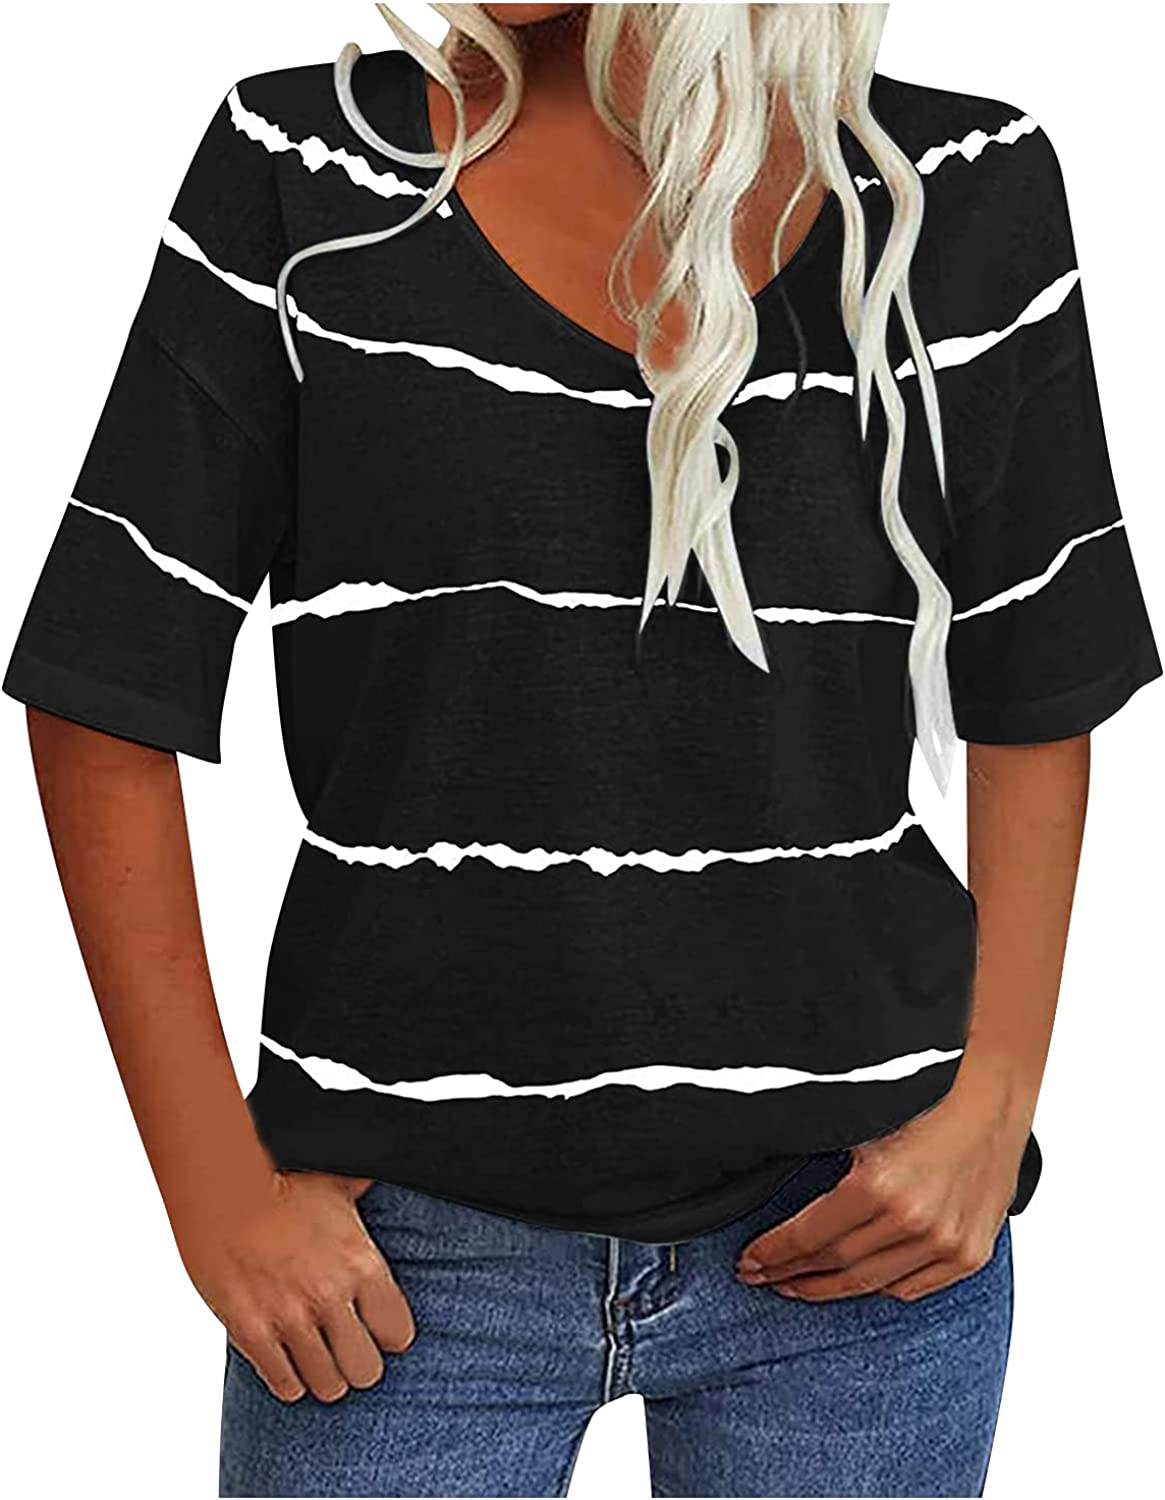 Women's Color Block Cap Sleeve T Shirts Summer Casual Tee Tops Loose Blouse